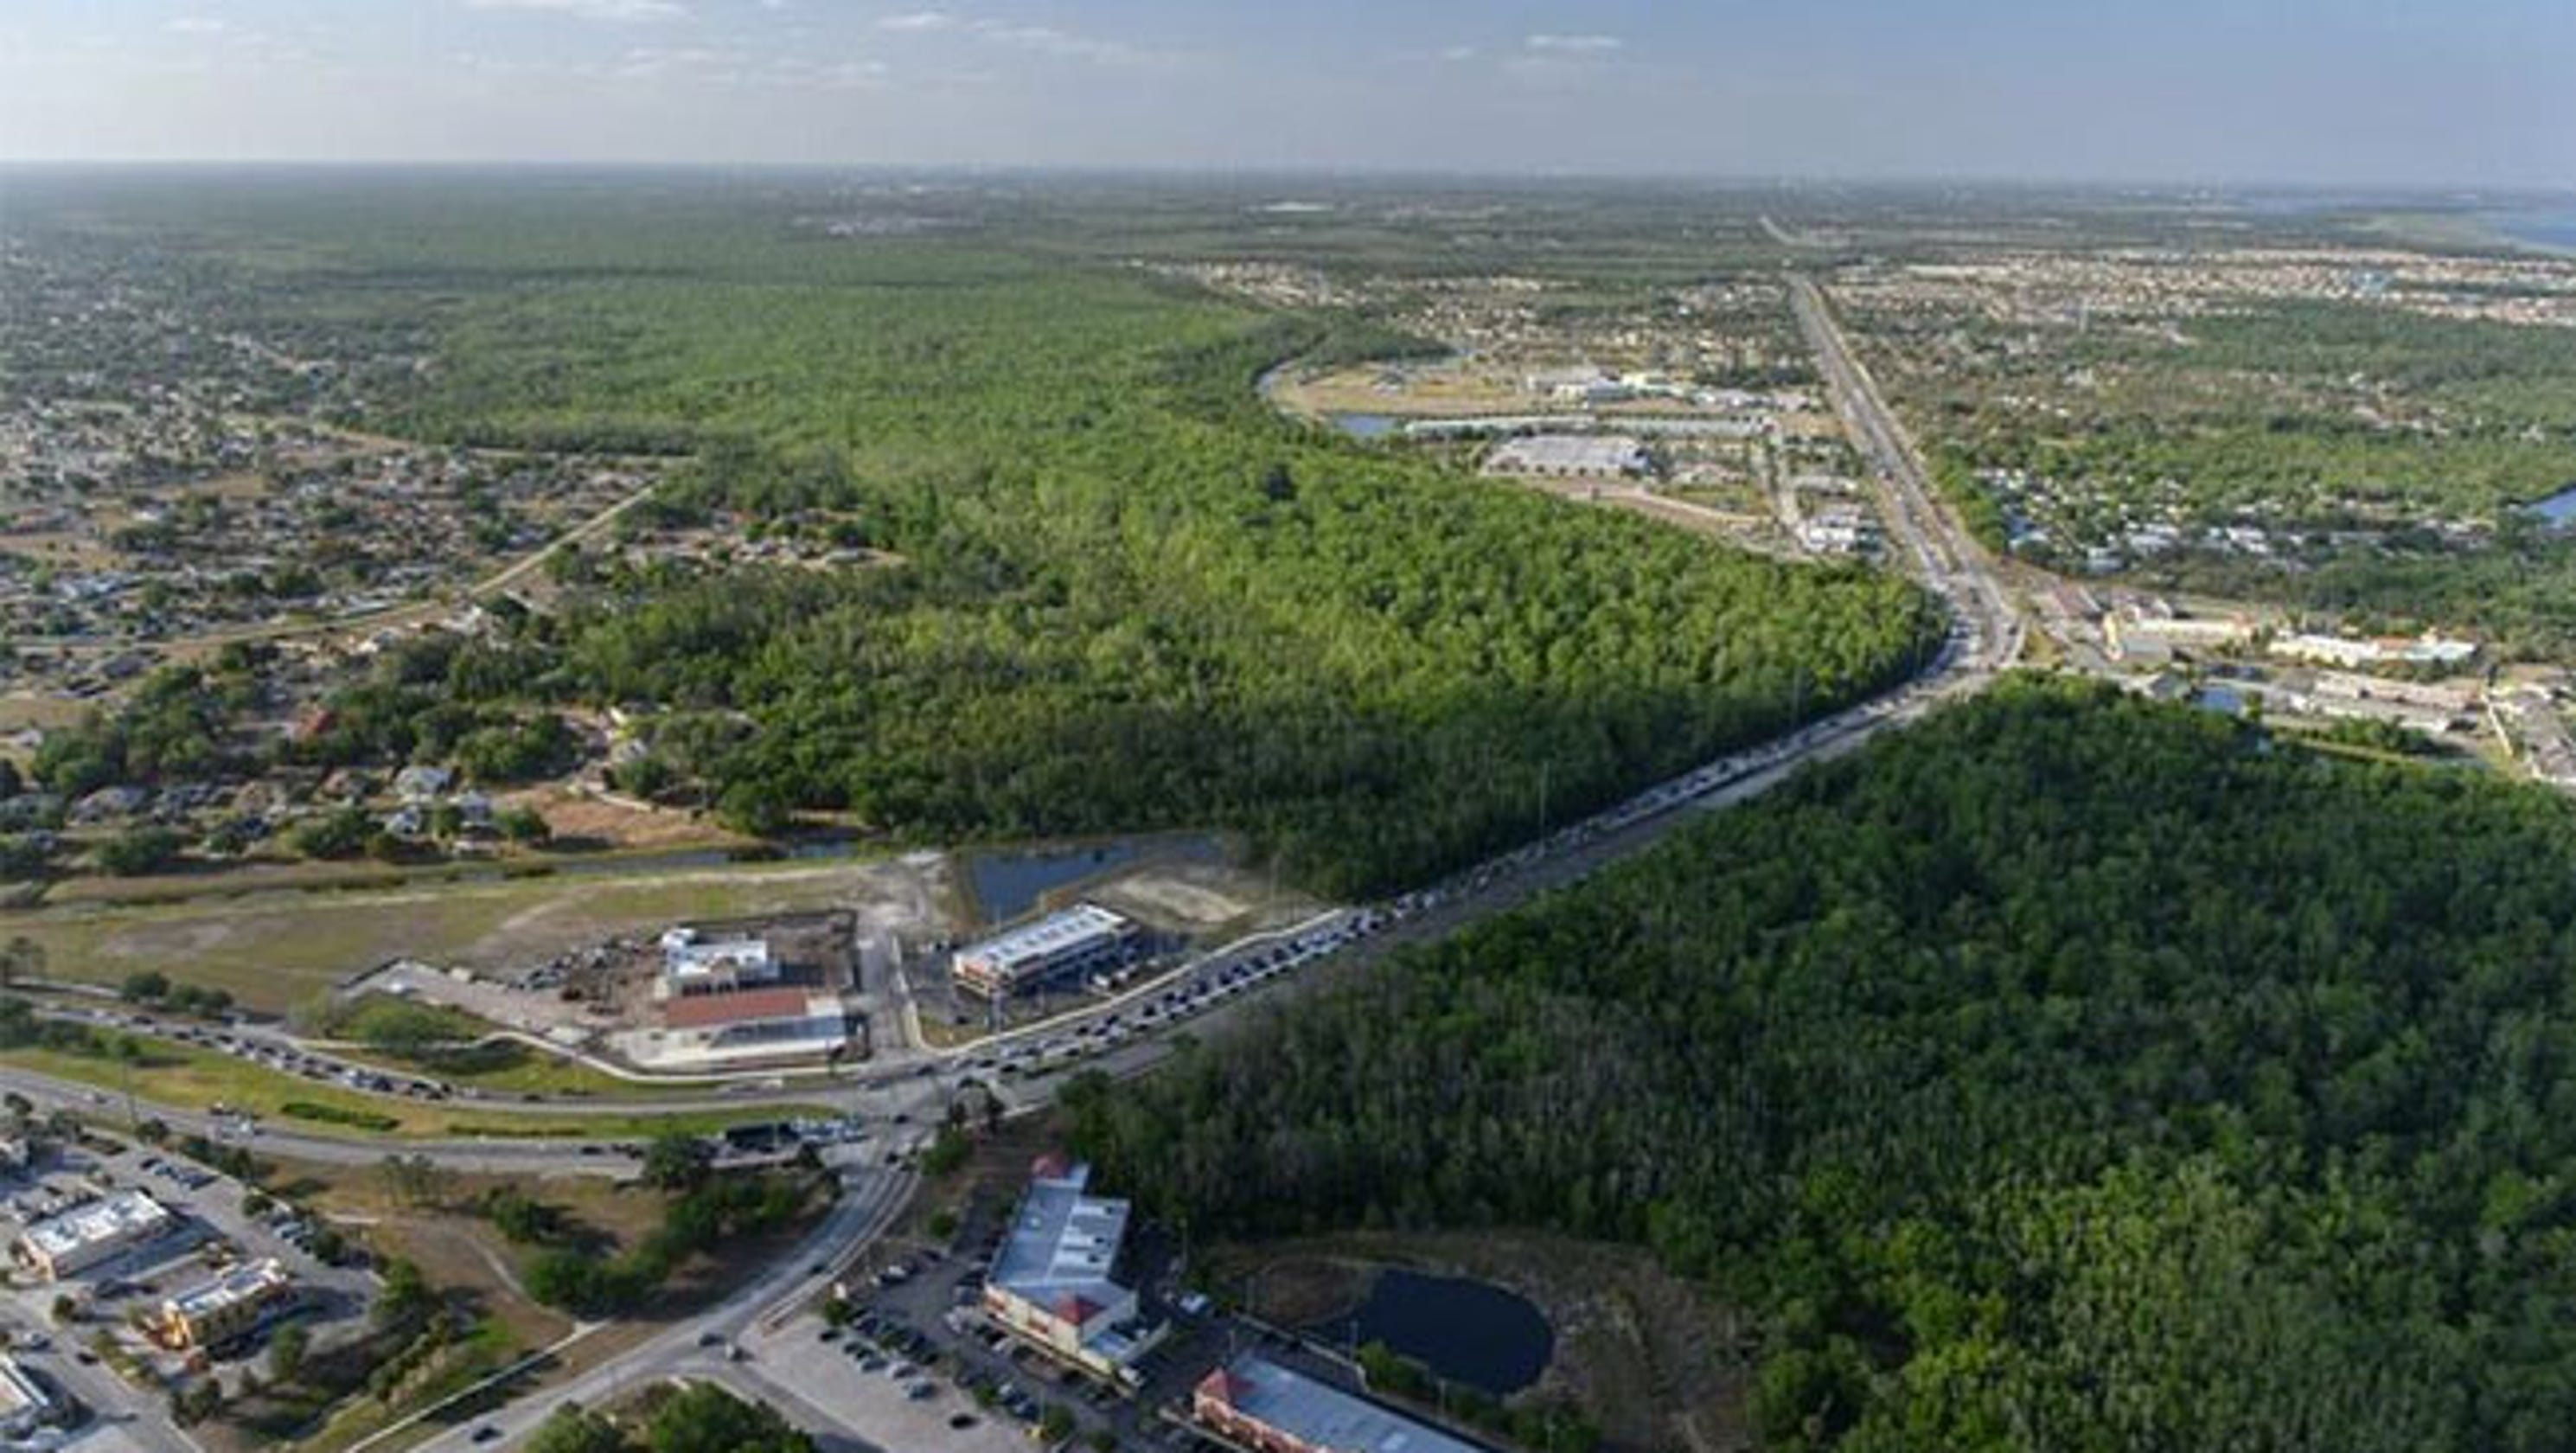 Wildlife Corridor Disappearing As Florida S Population Zooms